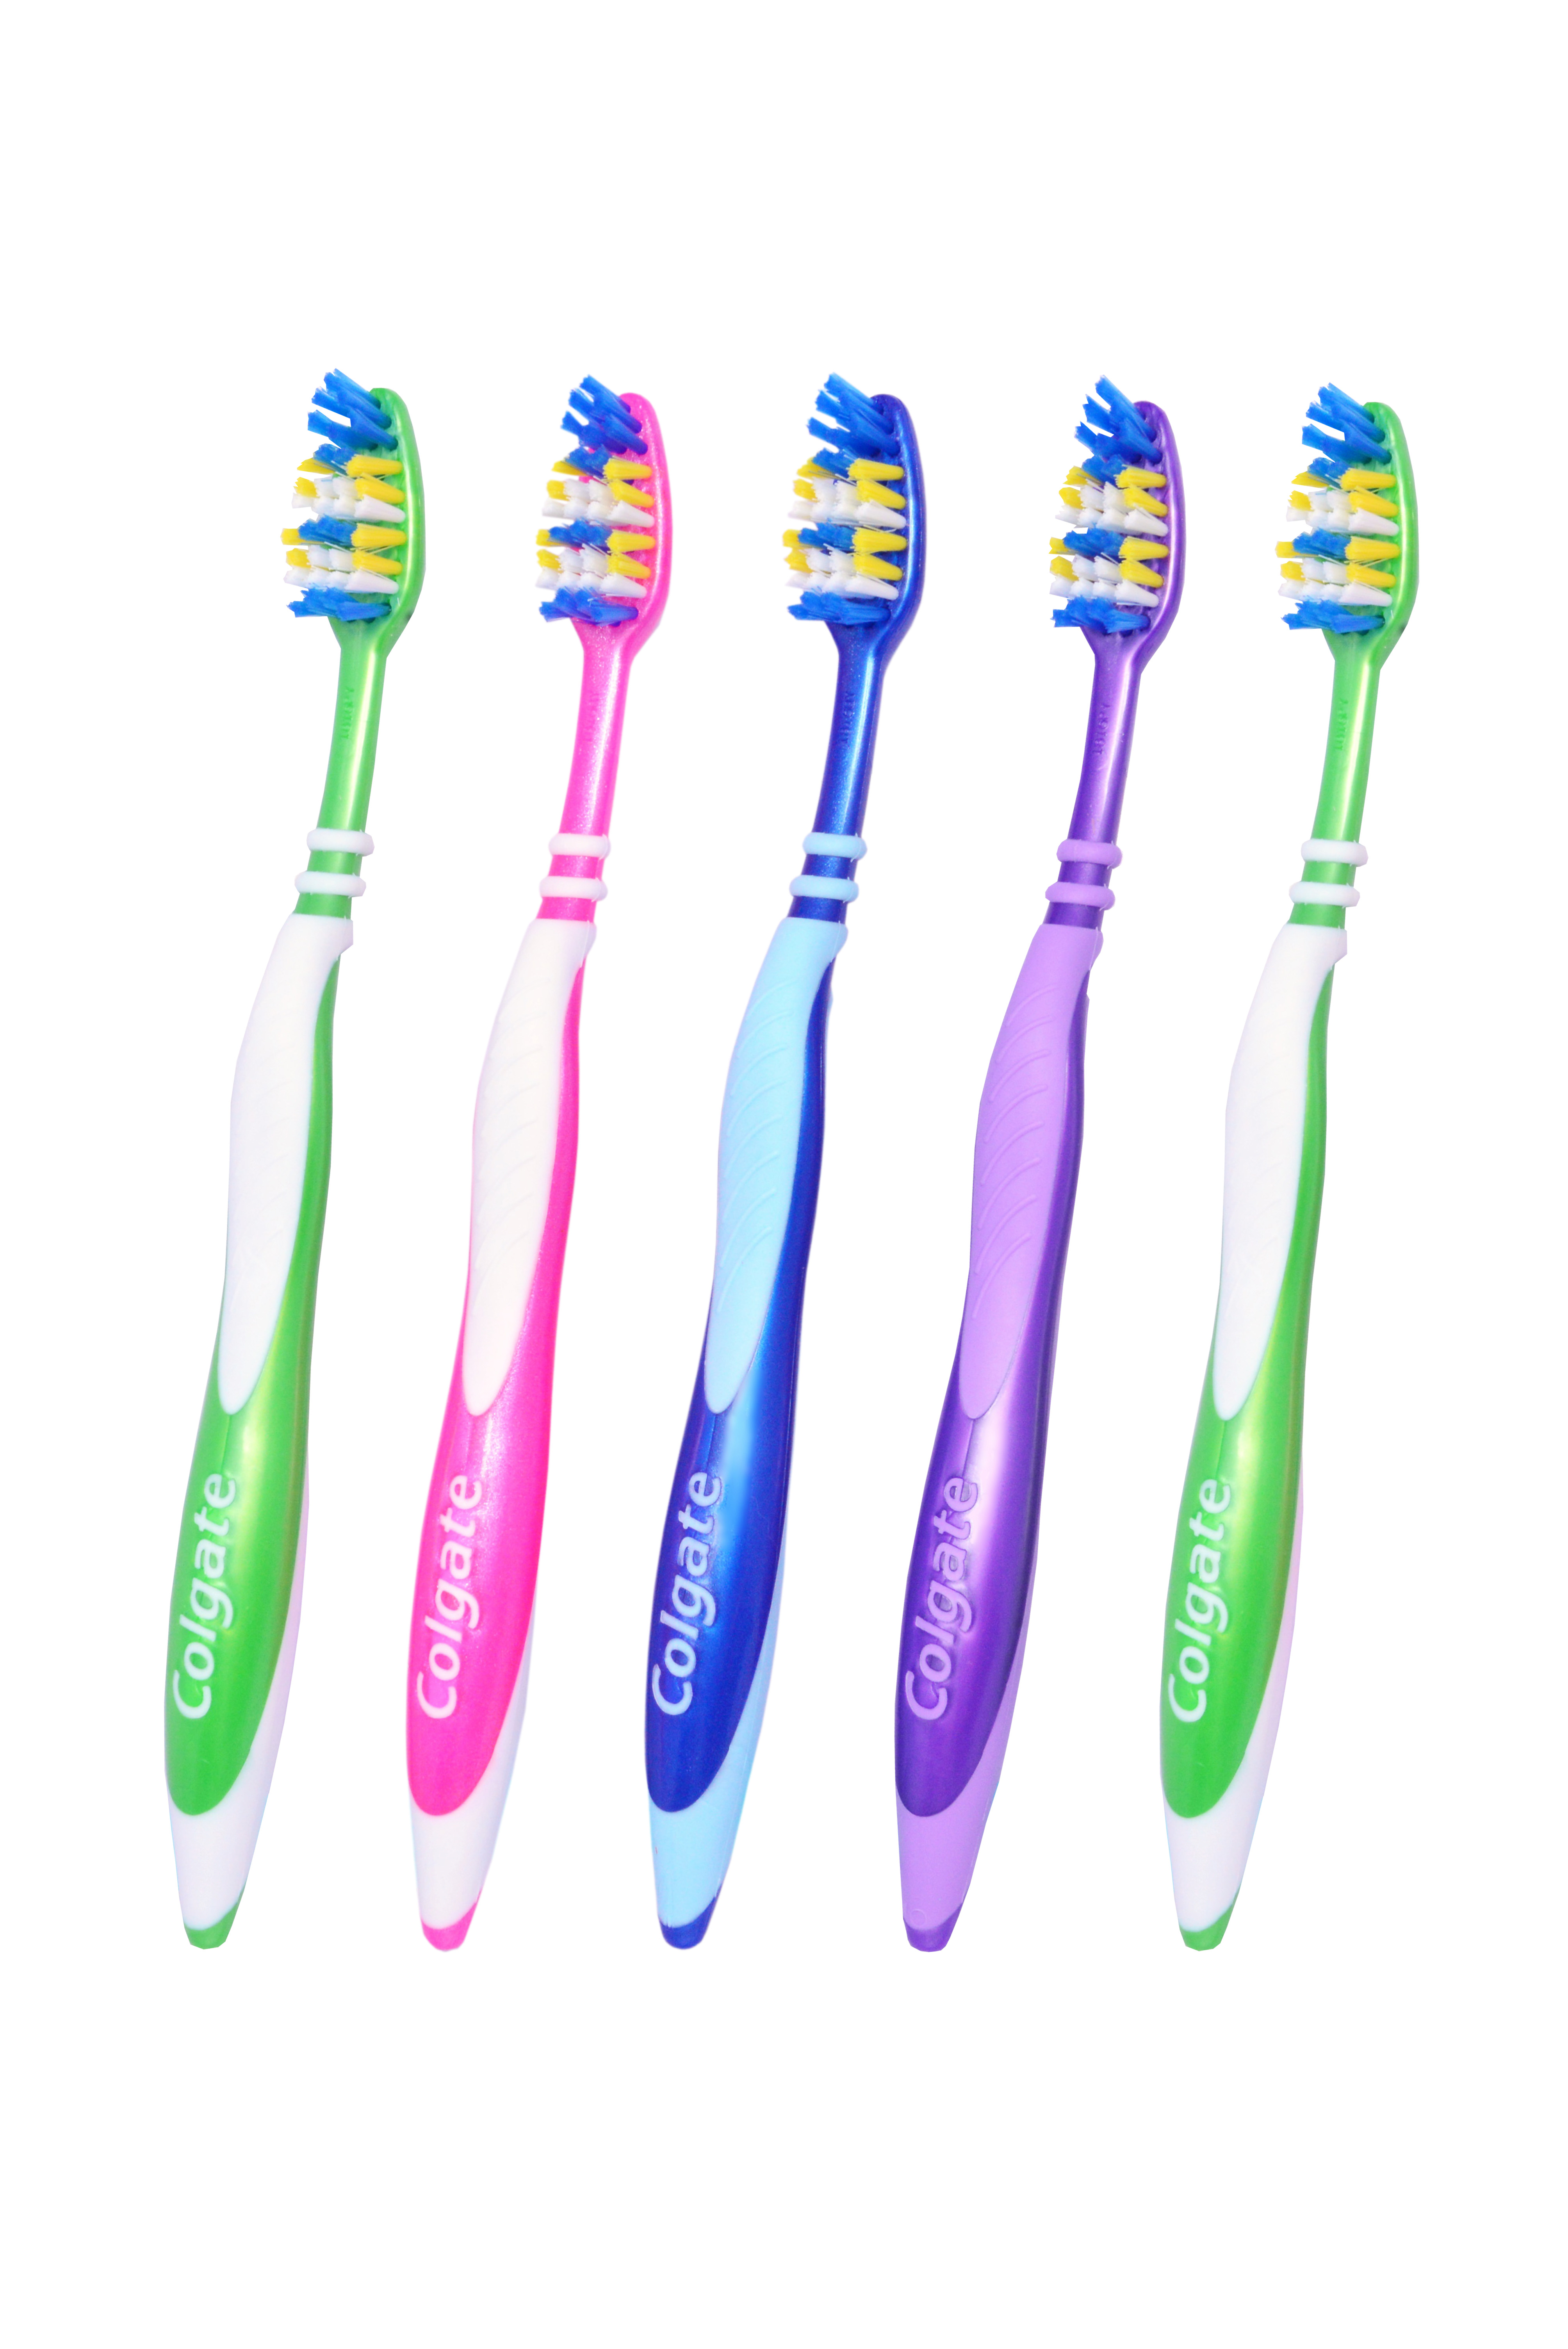 Toothbrushes Reviews Ratings And Best Price In Kl Selangor Colgate Zig Zag Charcoal 1pc Zigzag Soft Buy 3 Free 2 Toothbrush 5pcs